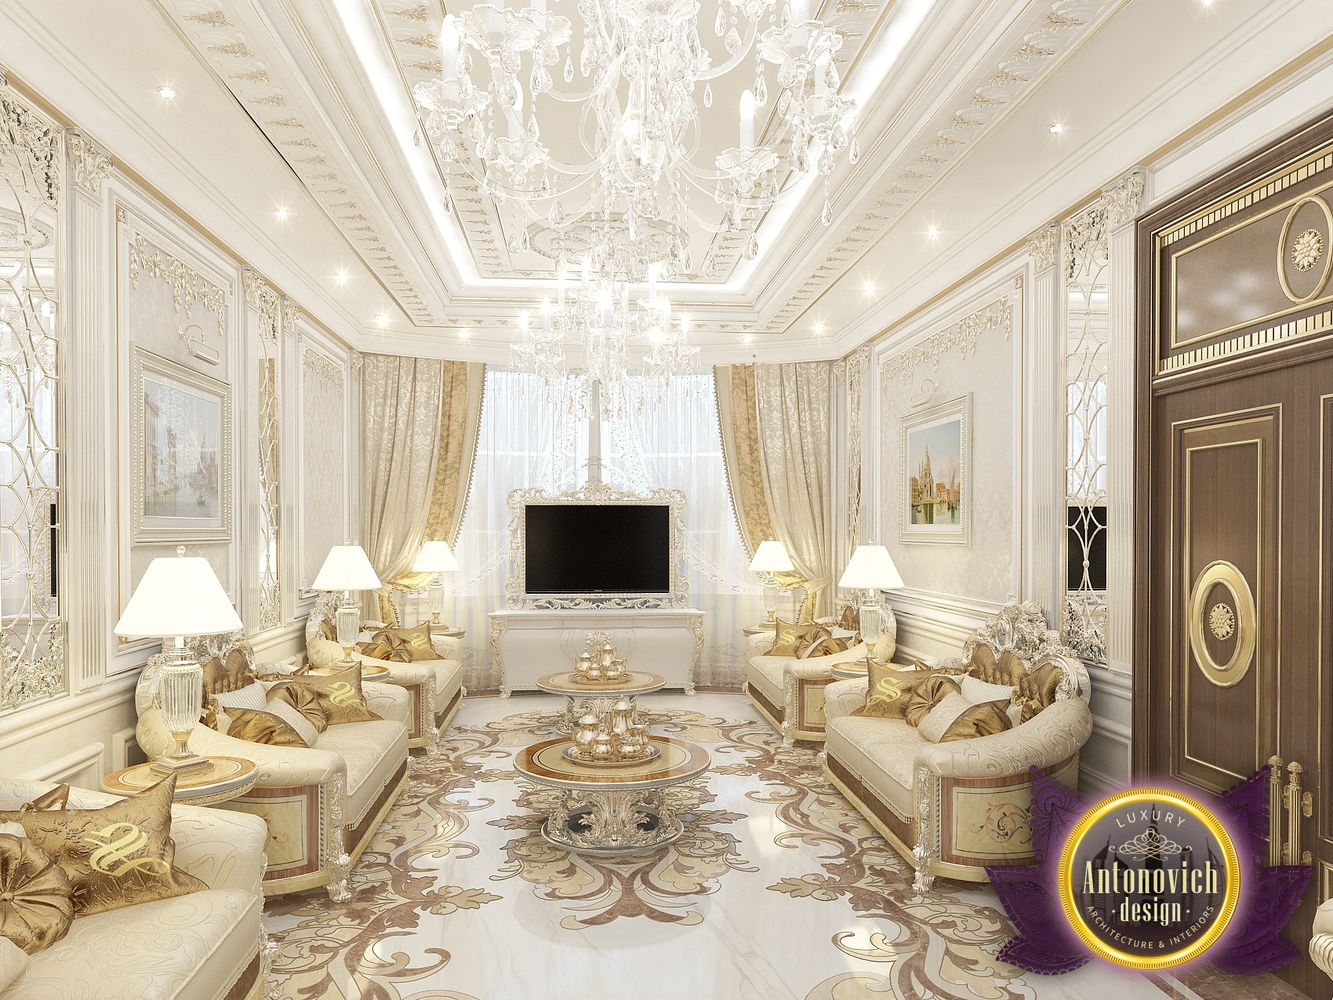 Luxury antonovich design uae living room interior design for Interior design 7